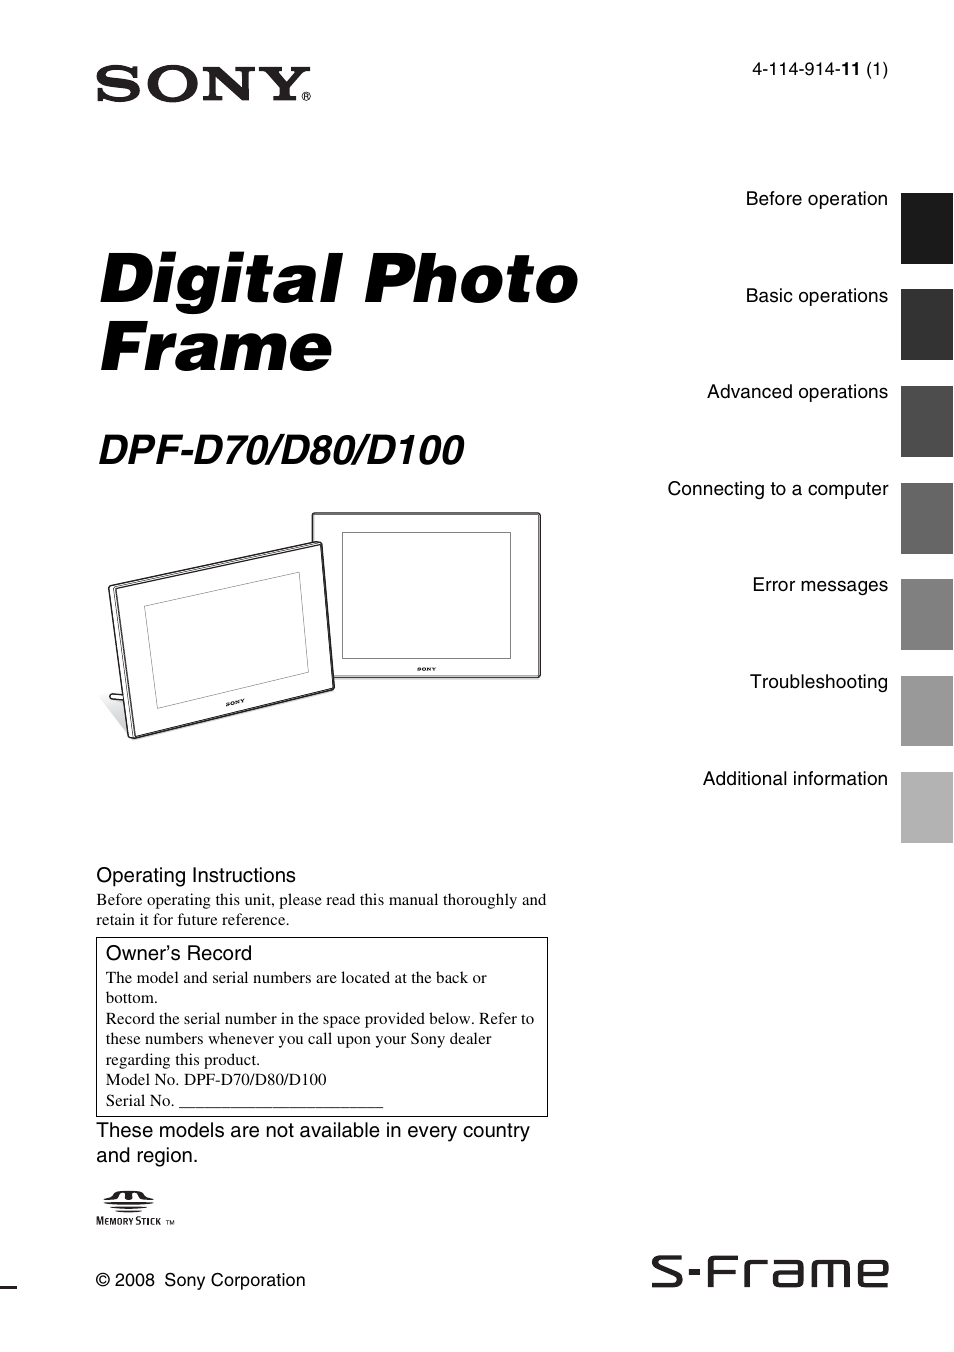 sony dpf d70 user manual 48 pages also for dpf d80 dpf d100 rh manualsdir com sony dpf-d70 manual Sony EVI-D70